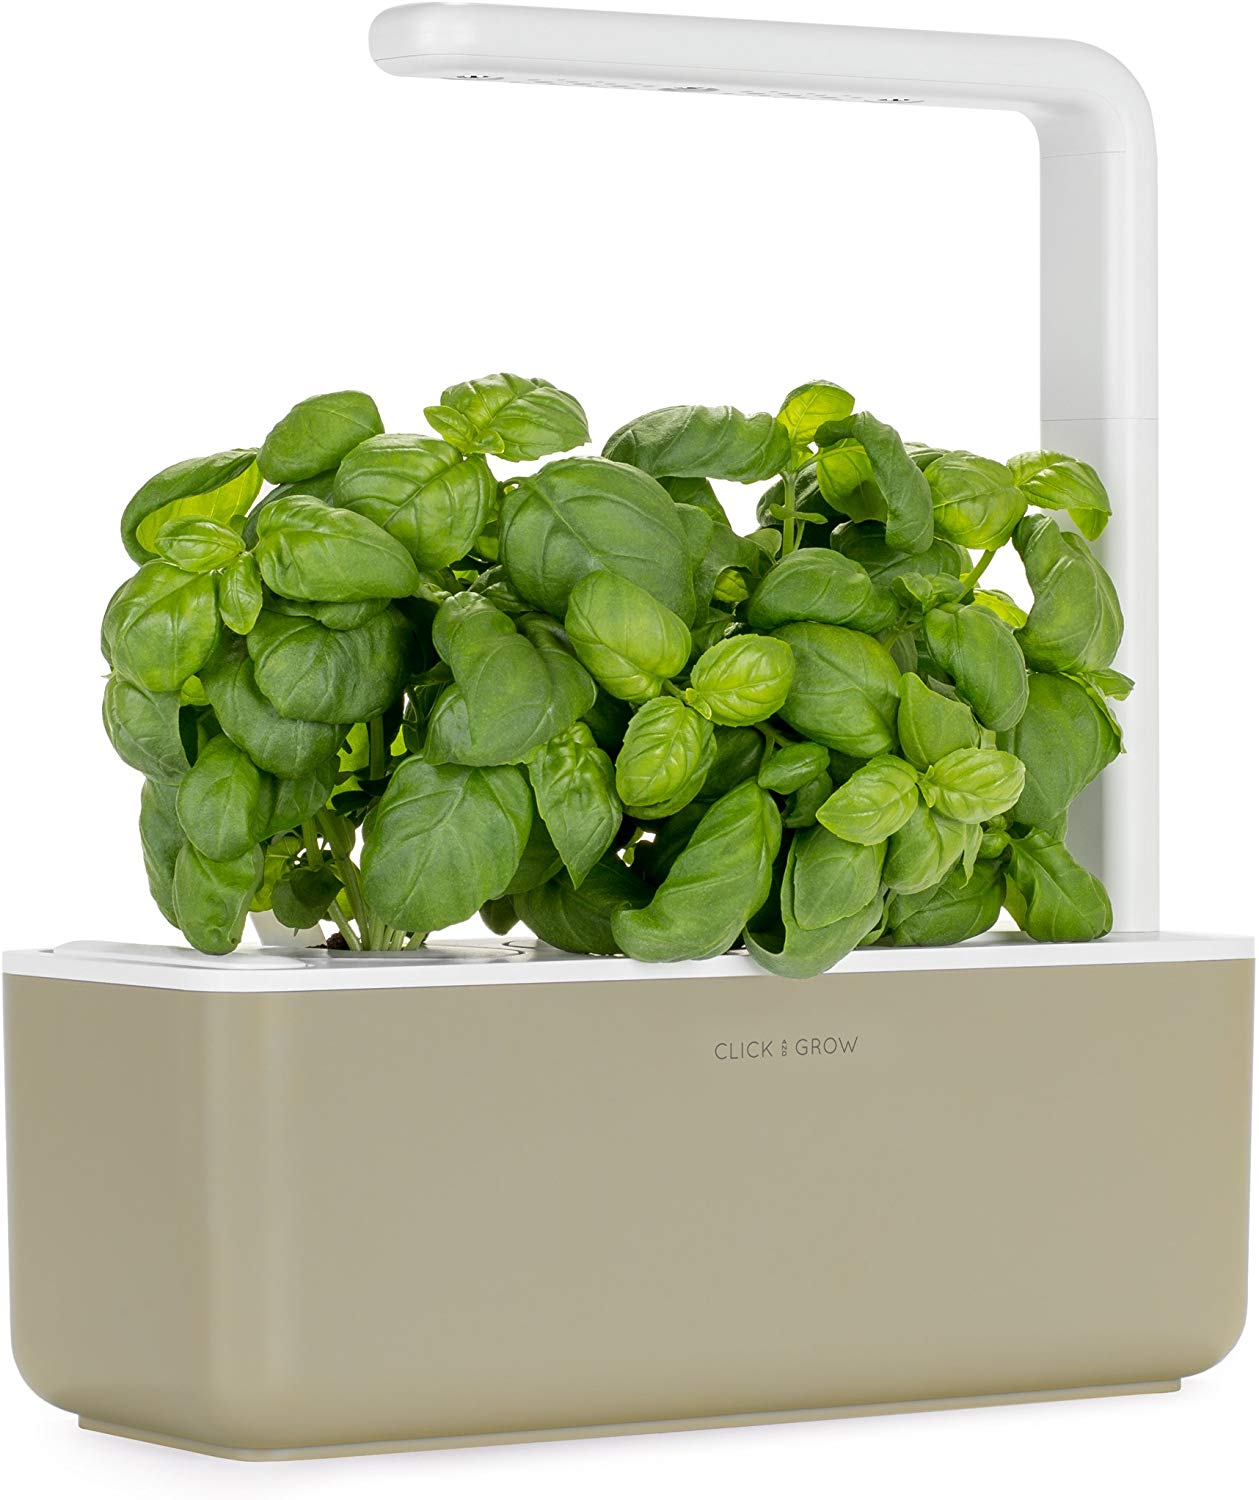 Click & Grow Hydroponic herb system